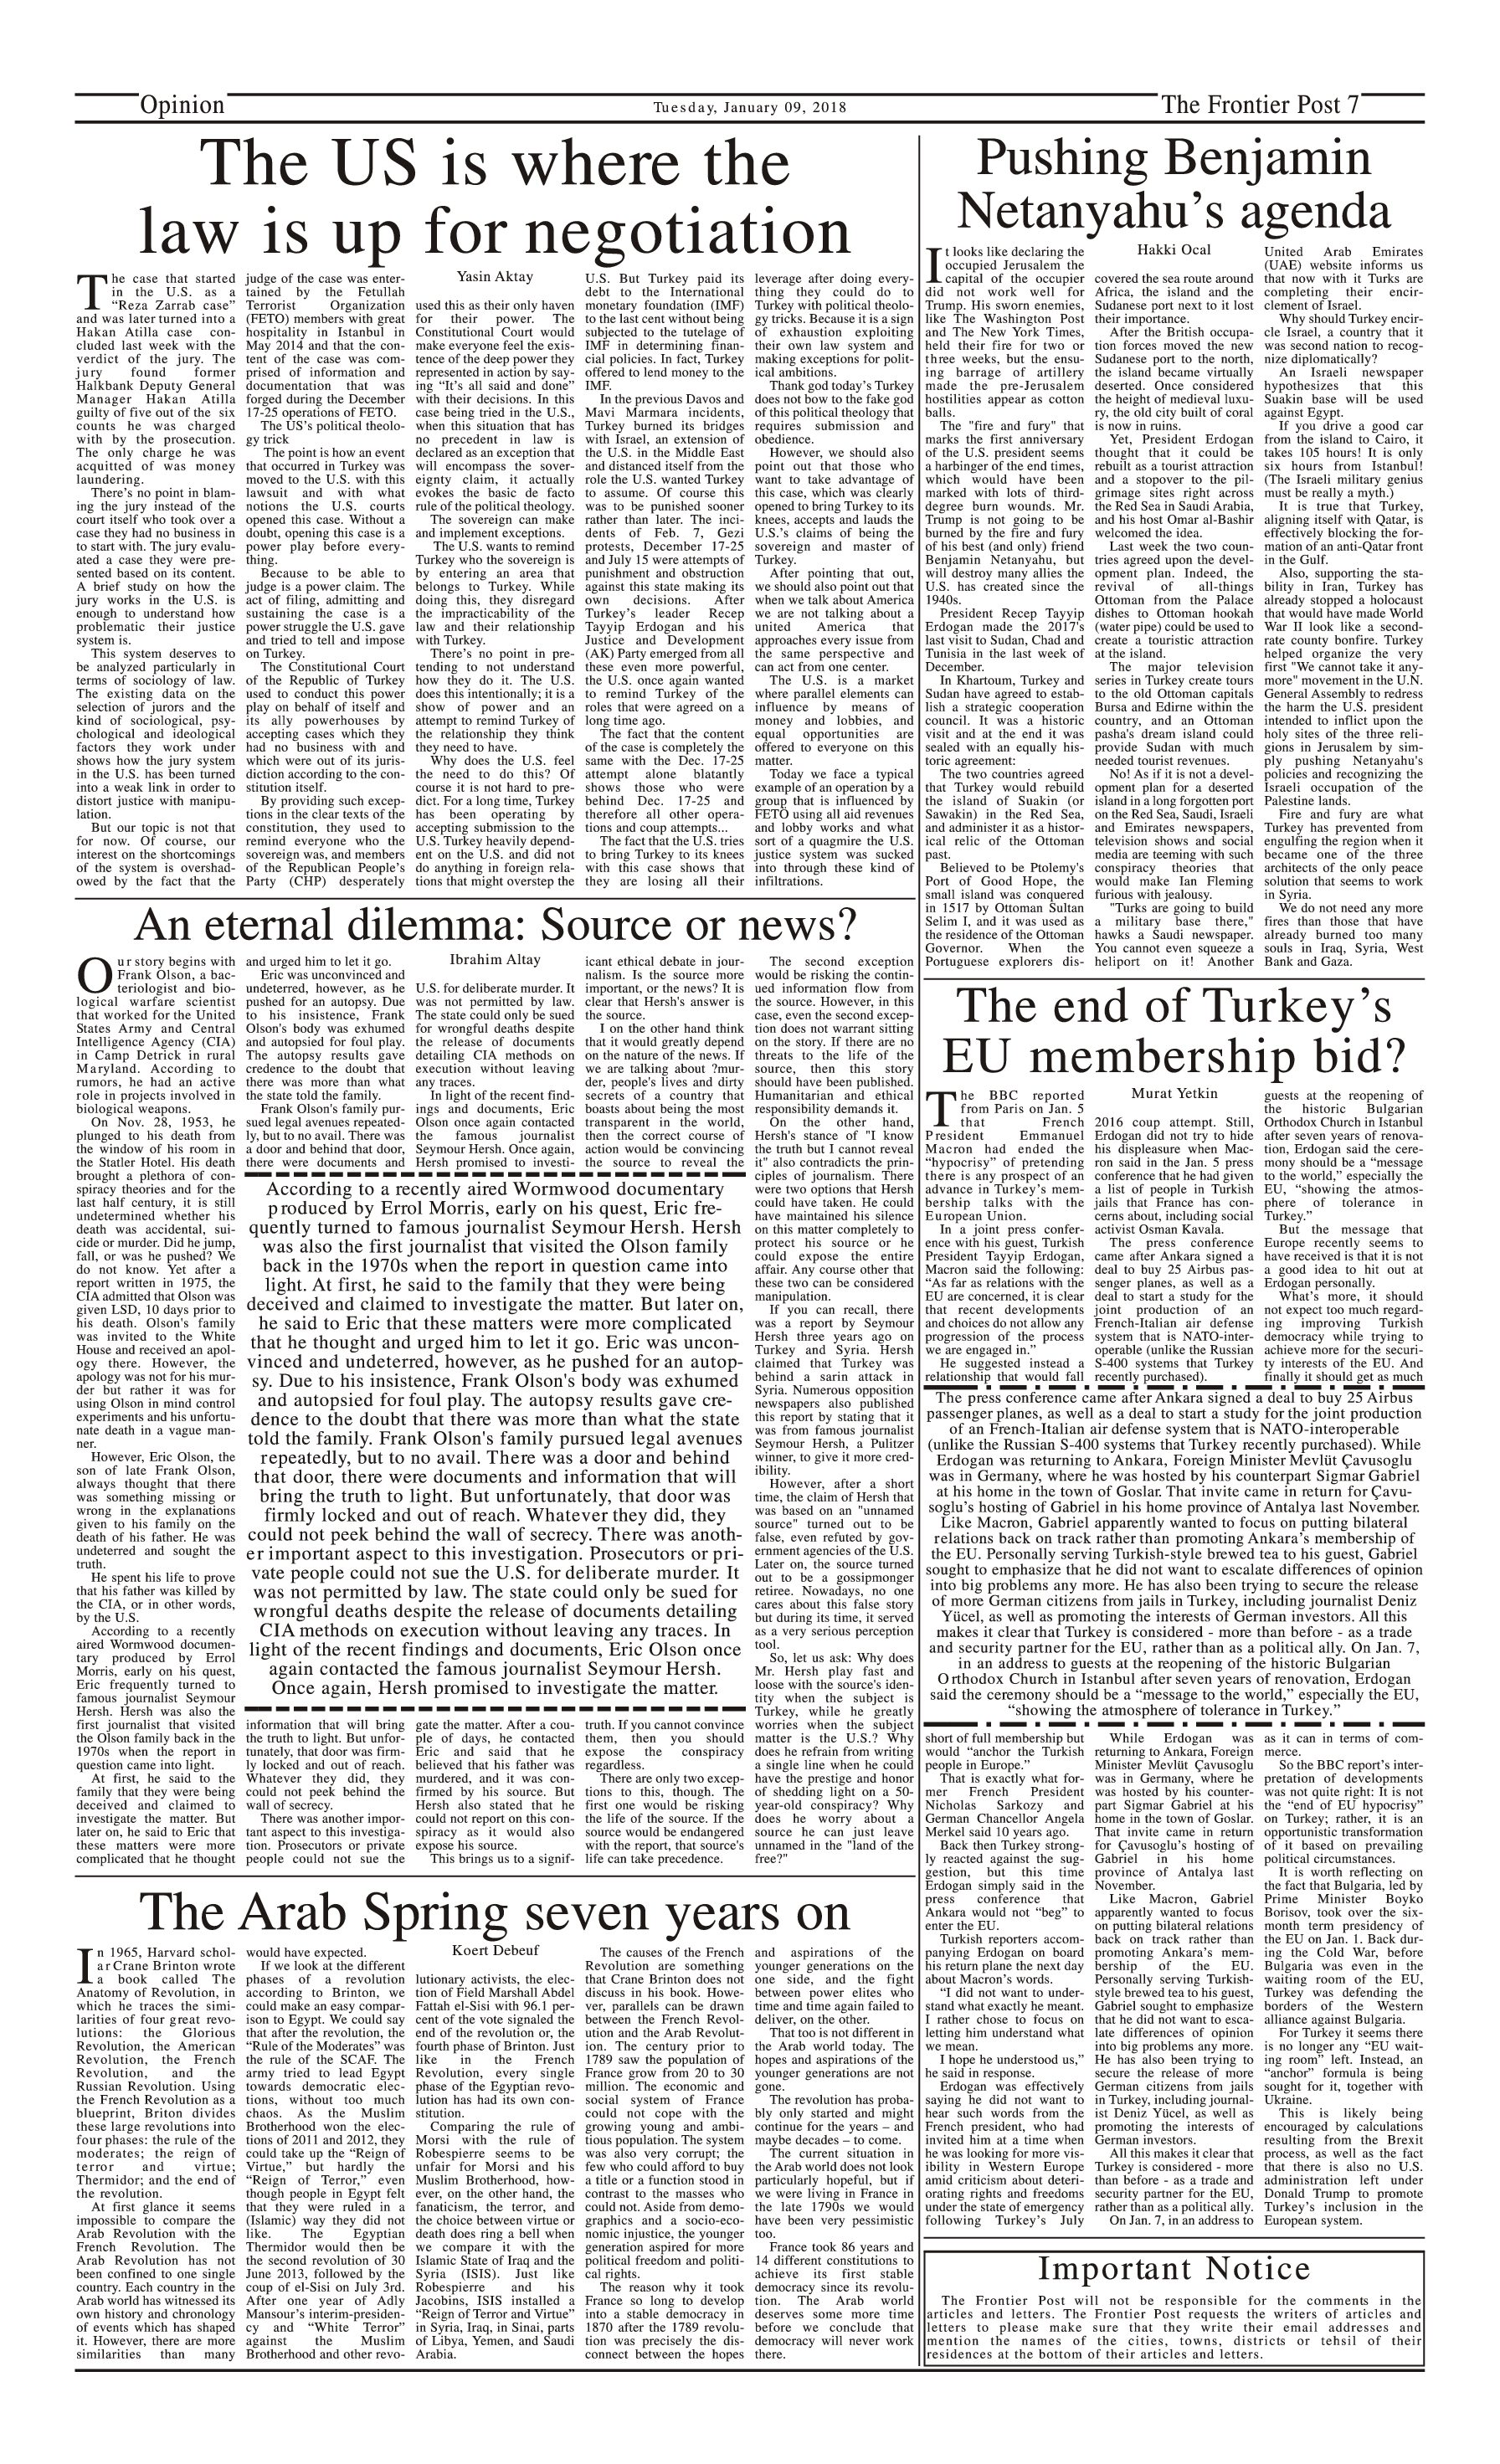 Opinion Page 9-1